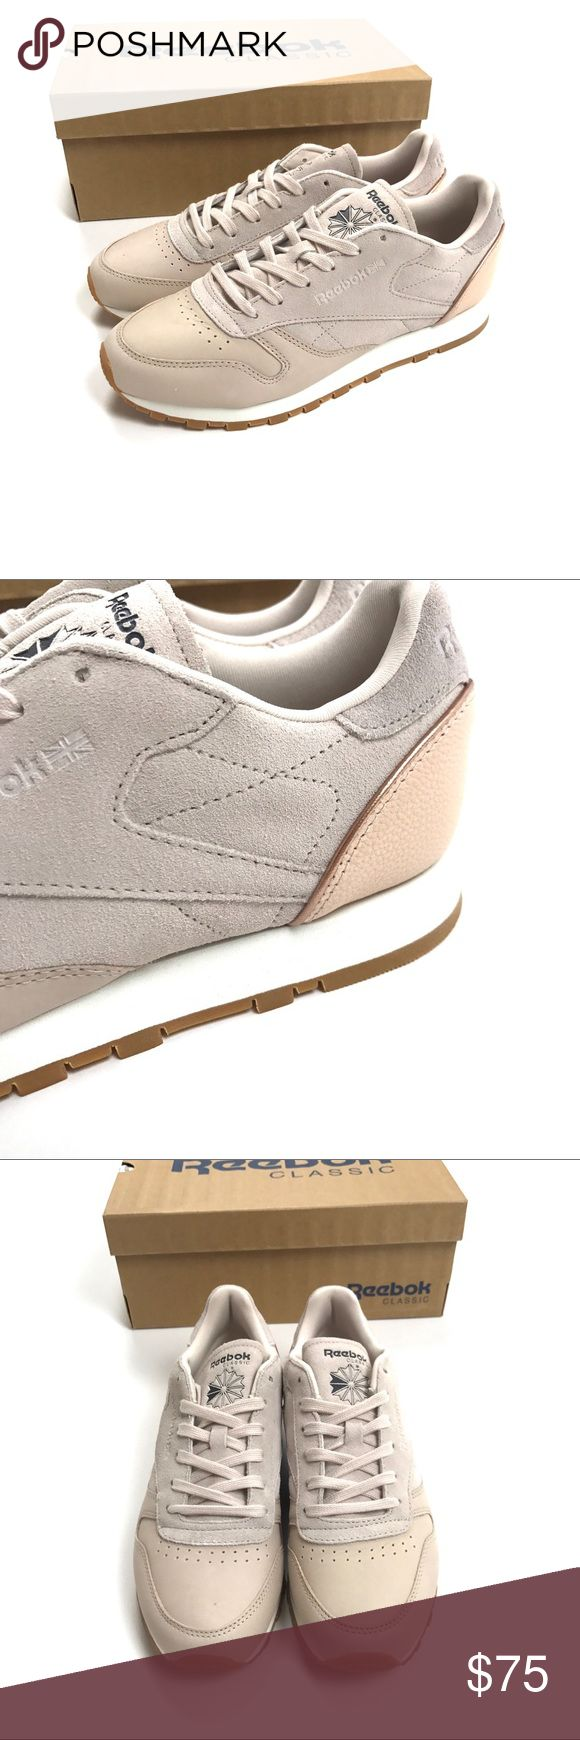 NEW Reebok Classics Nude Golden Neutrals Size 8.5 Reebok Classics Womens Size 8.5  Leather & Cloth Golden Neutrals With Gum Sole  Retail price: $90.00  Condition: New with box. Reebok Shoes Sneakers